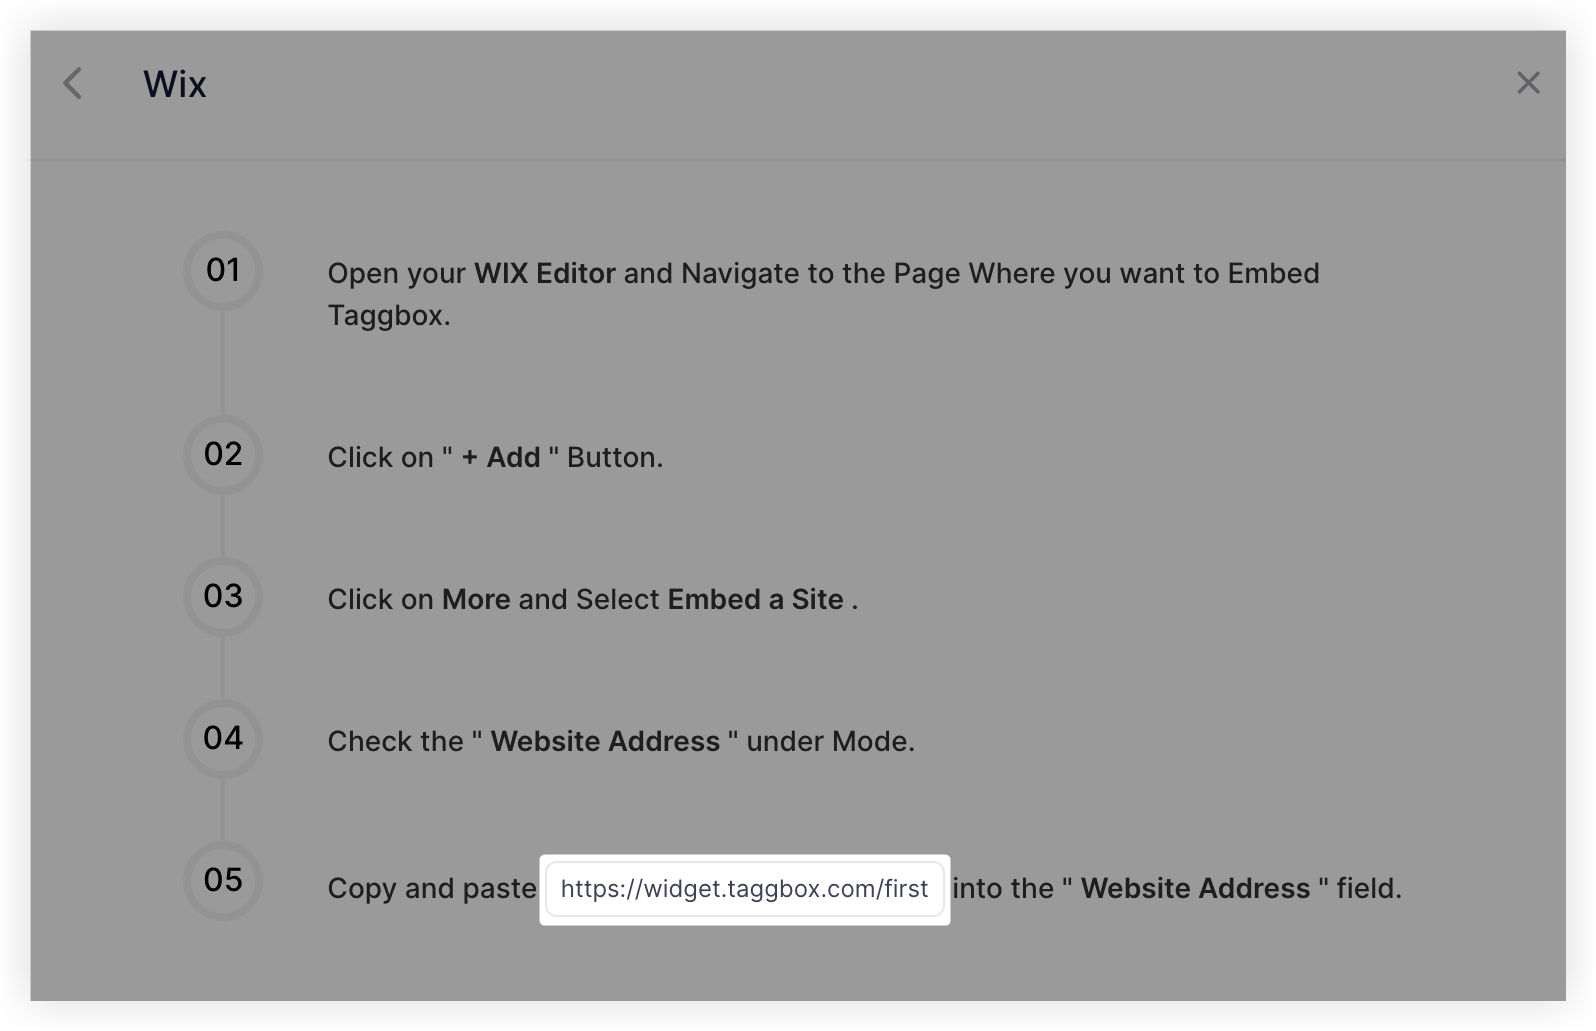 Screenshot showing the pop-up with the URL in step 5 highlighted.